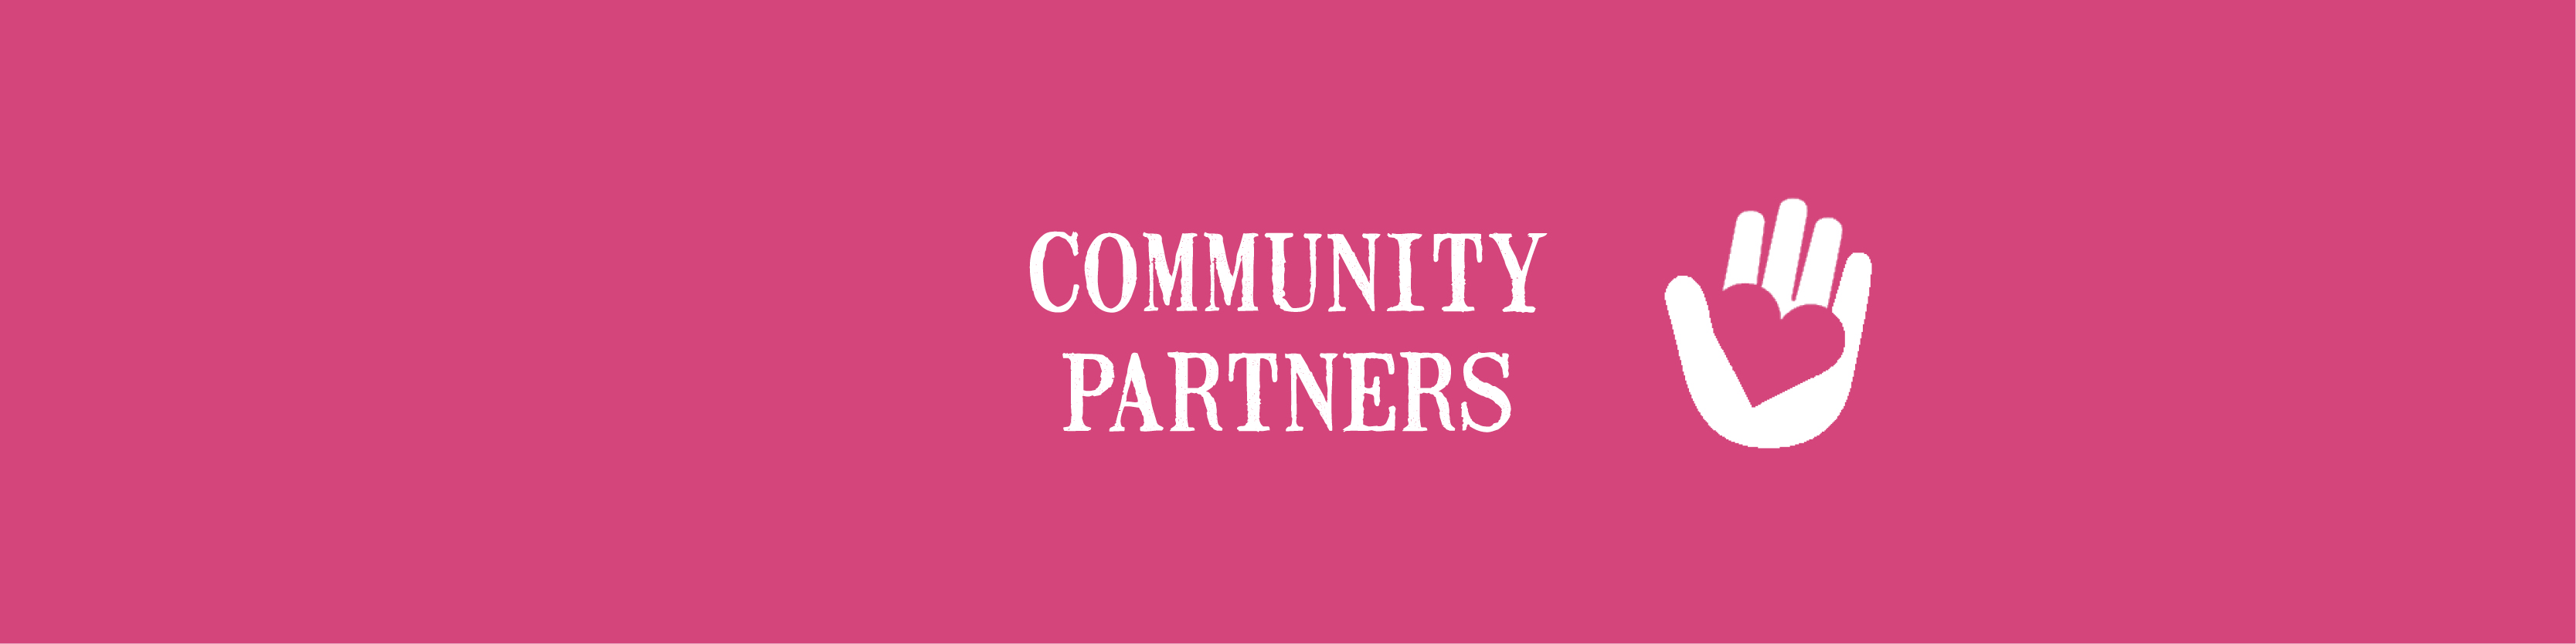 Banner 7 - Community Partners - pink